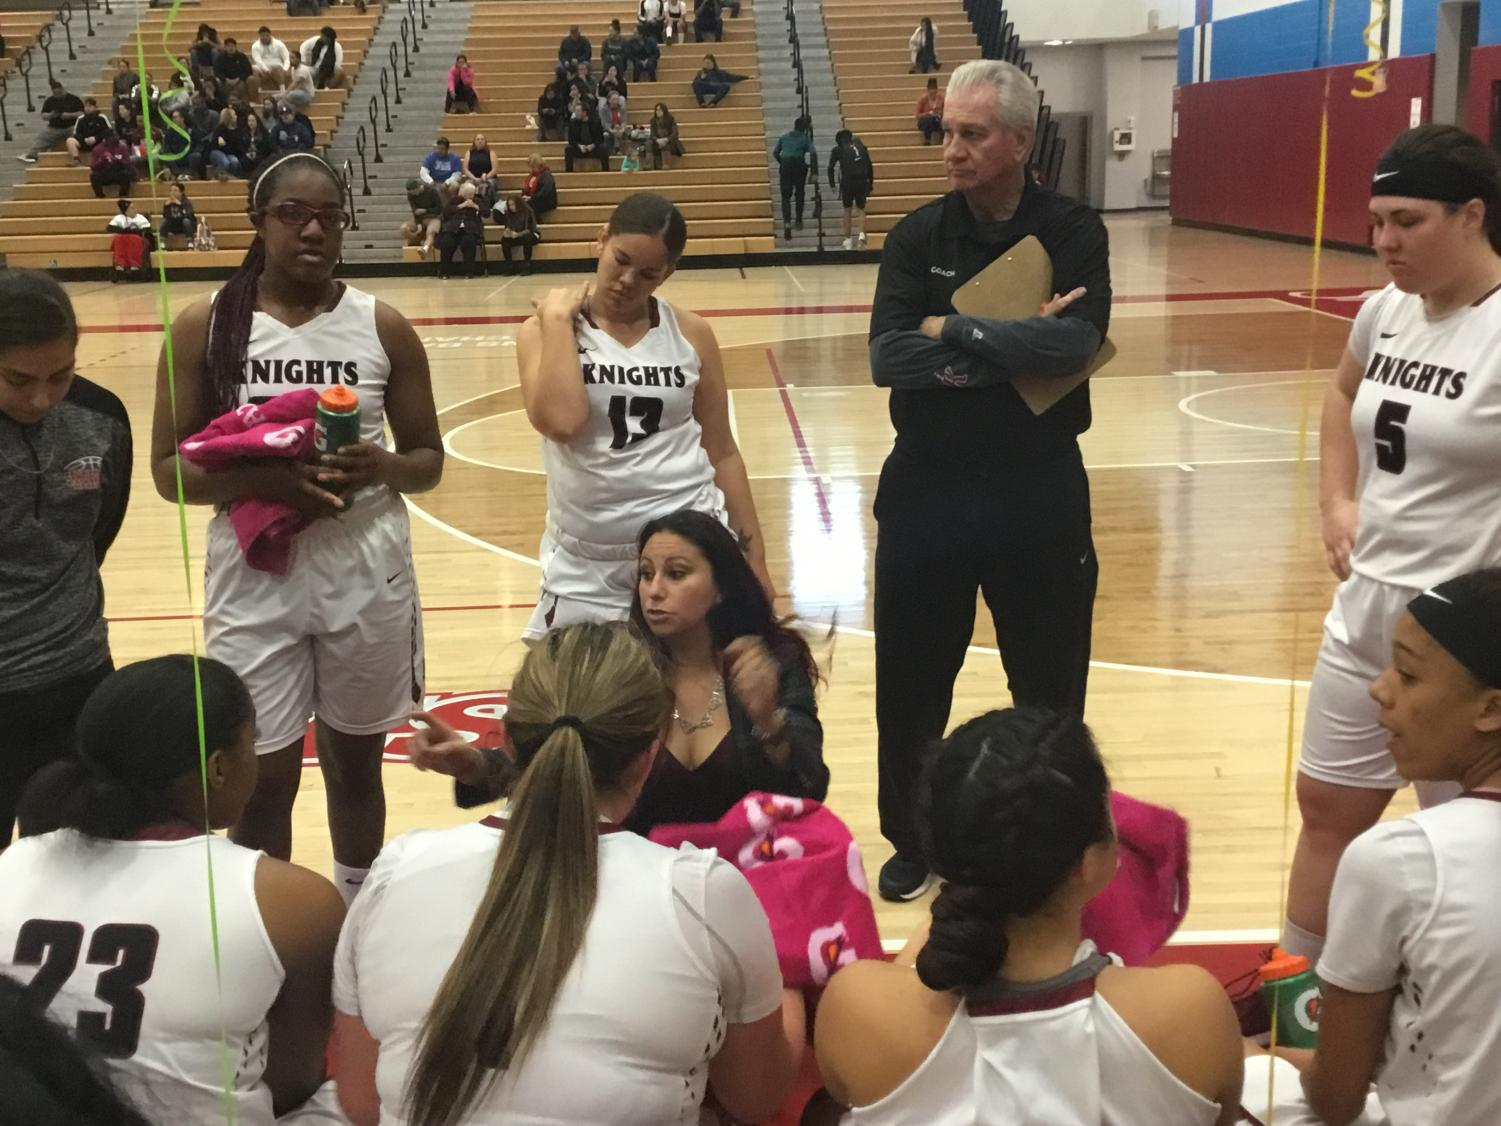 Coach Andrea Aguilar-Montalban speaks to players during final game of the season. By Sonny Garibay/City Times